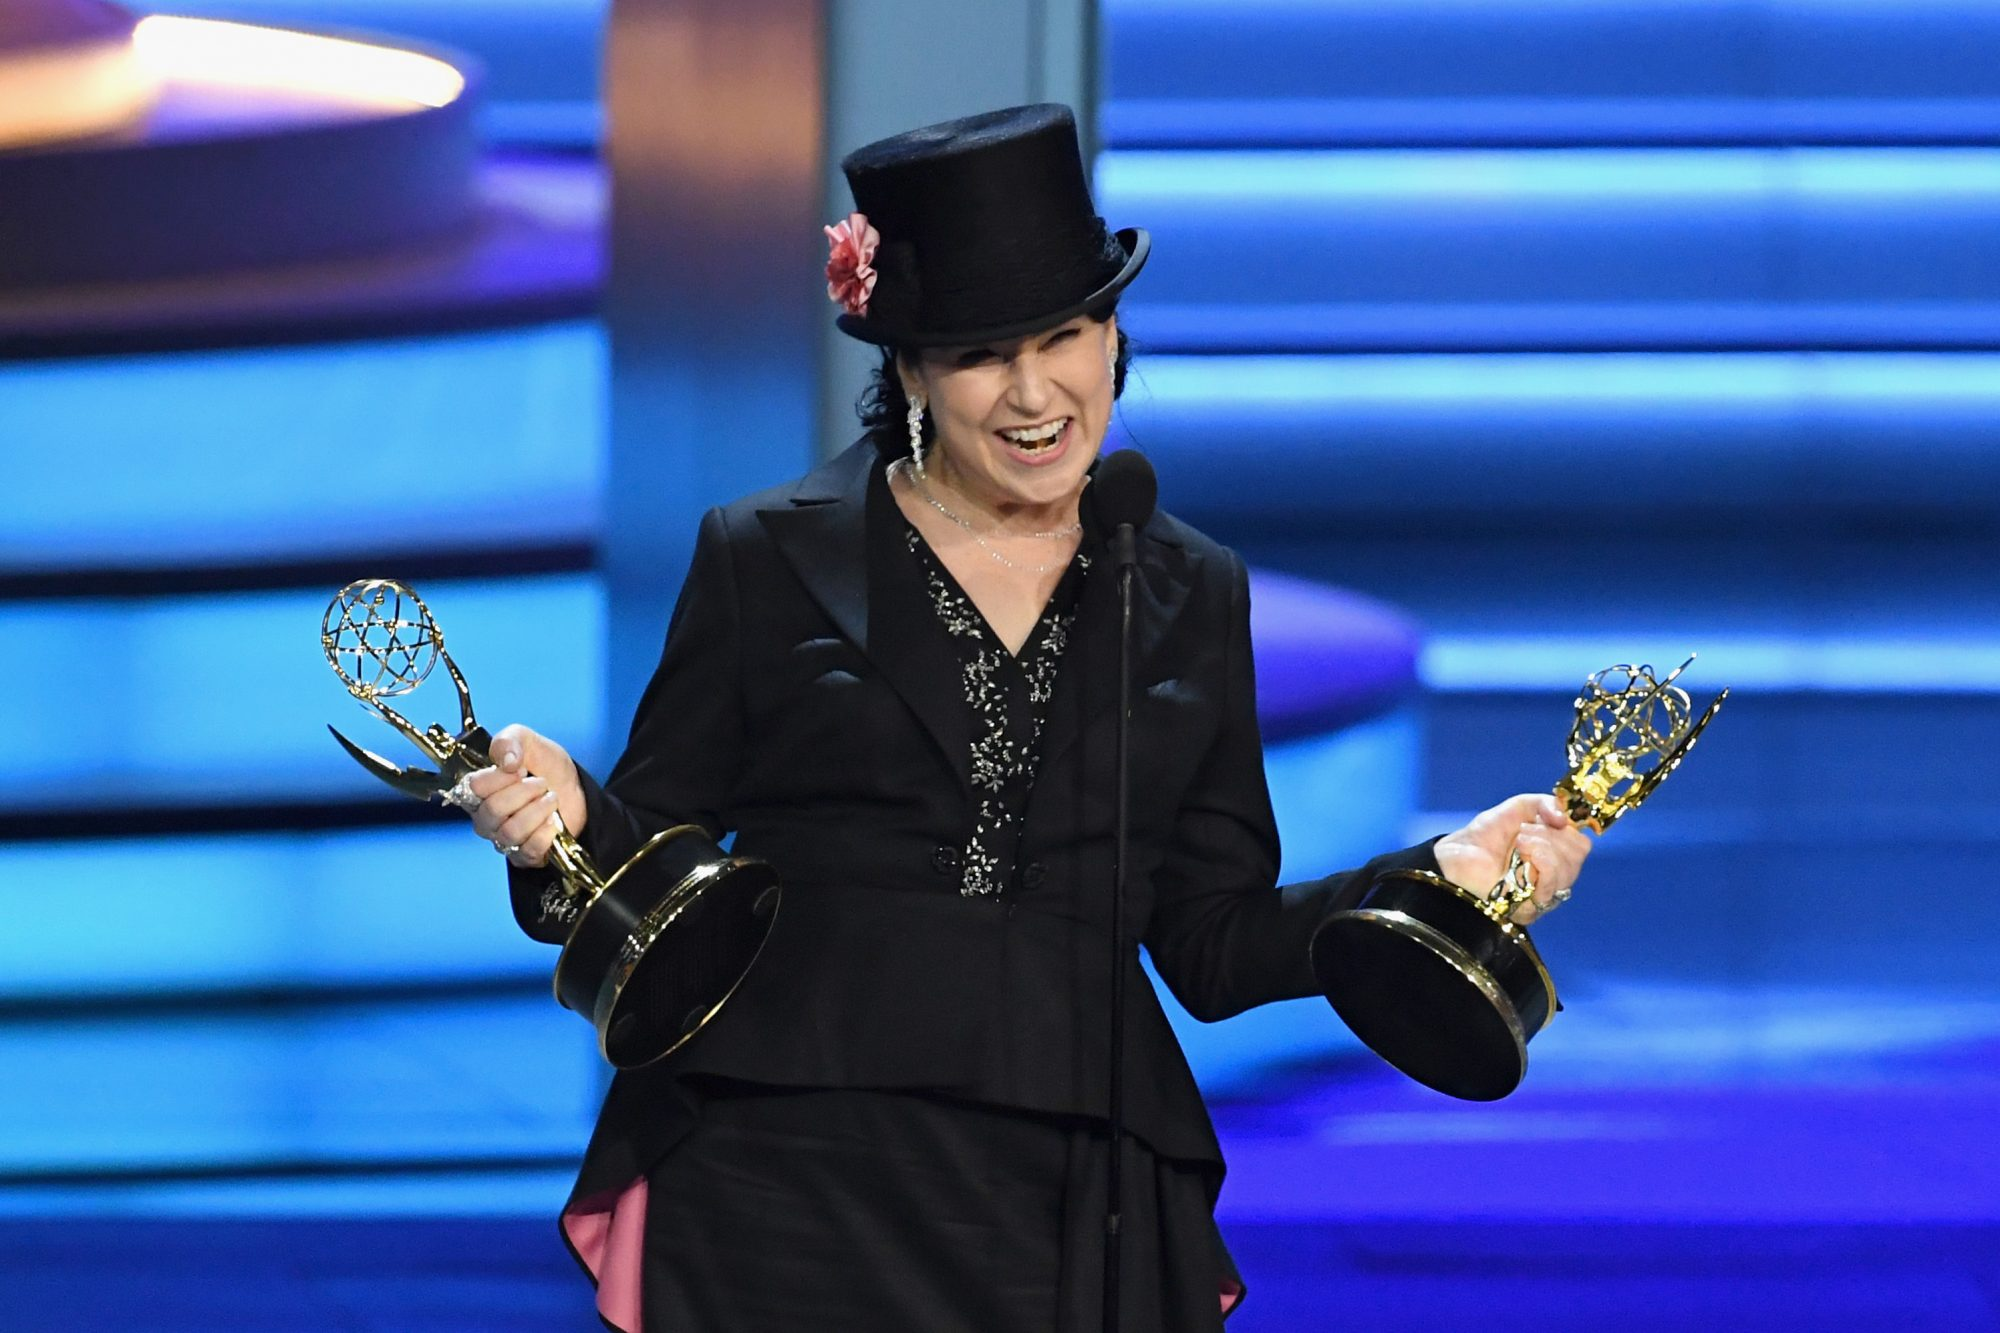 'The Marvelous Mrs. Maisel' Creator Amy Sherman-Palladino Has a Classic Movie Remake on Deck